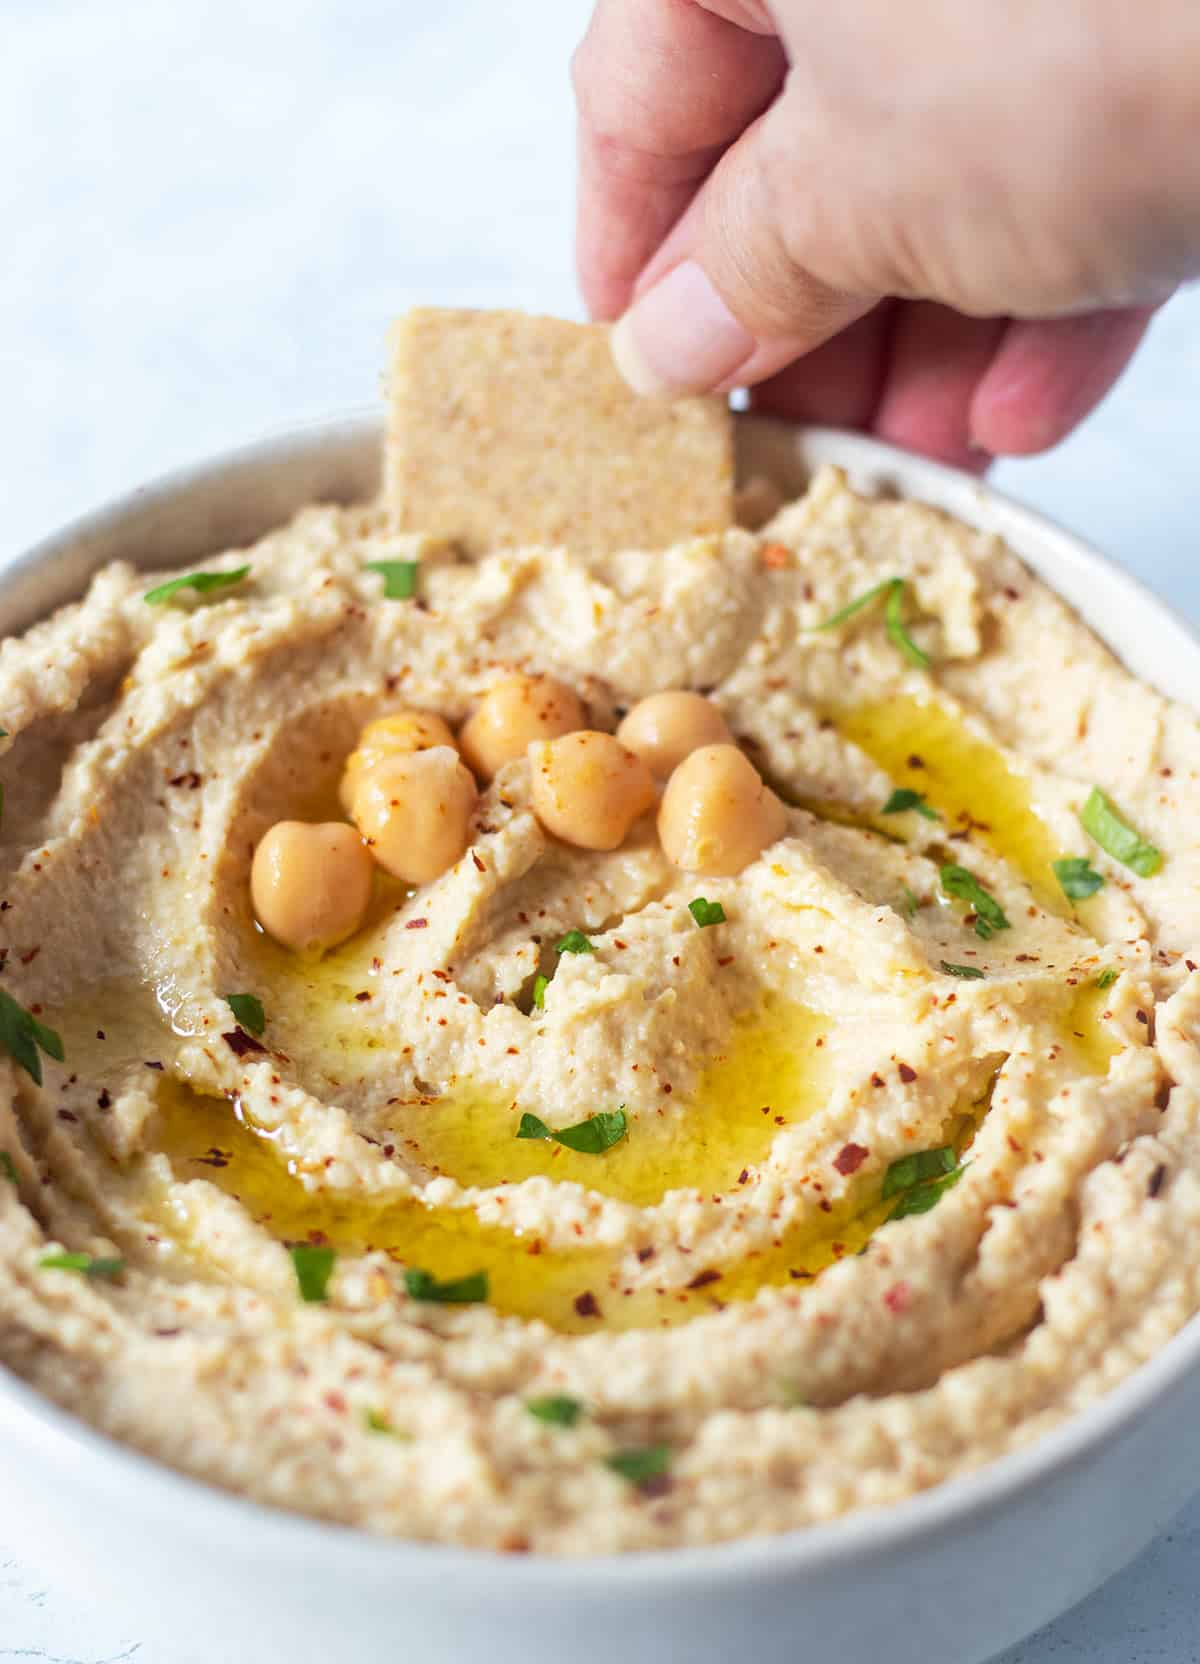 roasted garlic hummus in a white bowl garnished with olive oil, chickpeas, chopped parsley and red chili pepper flakes. A hand reaching in the dip with a cracker.